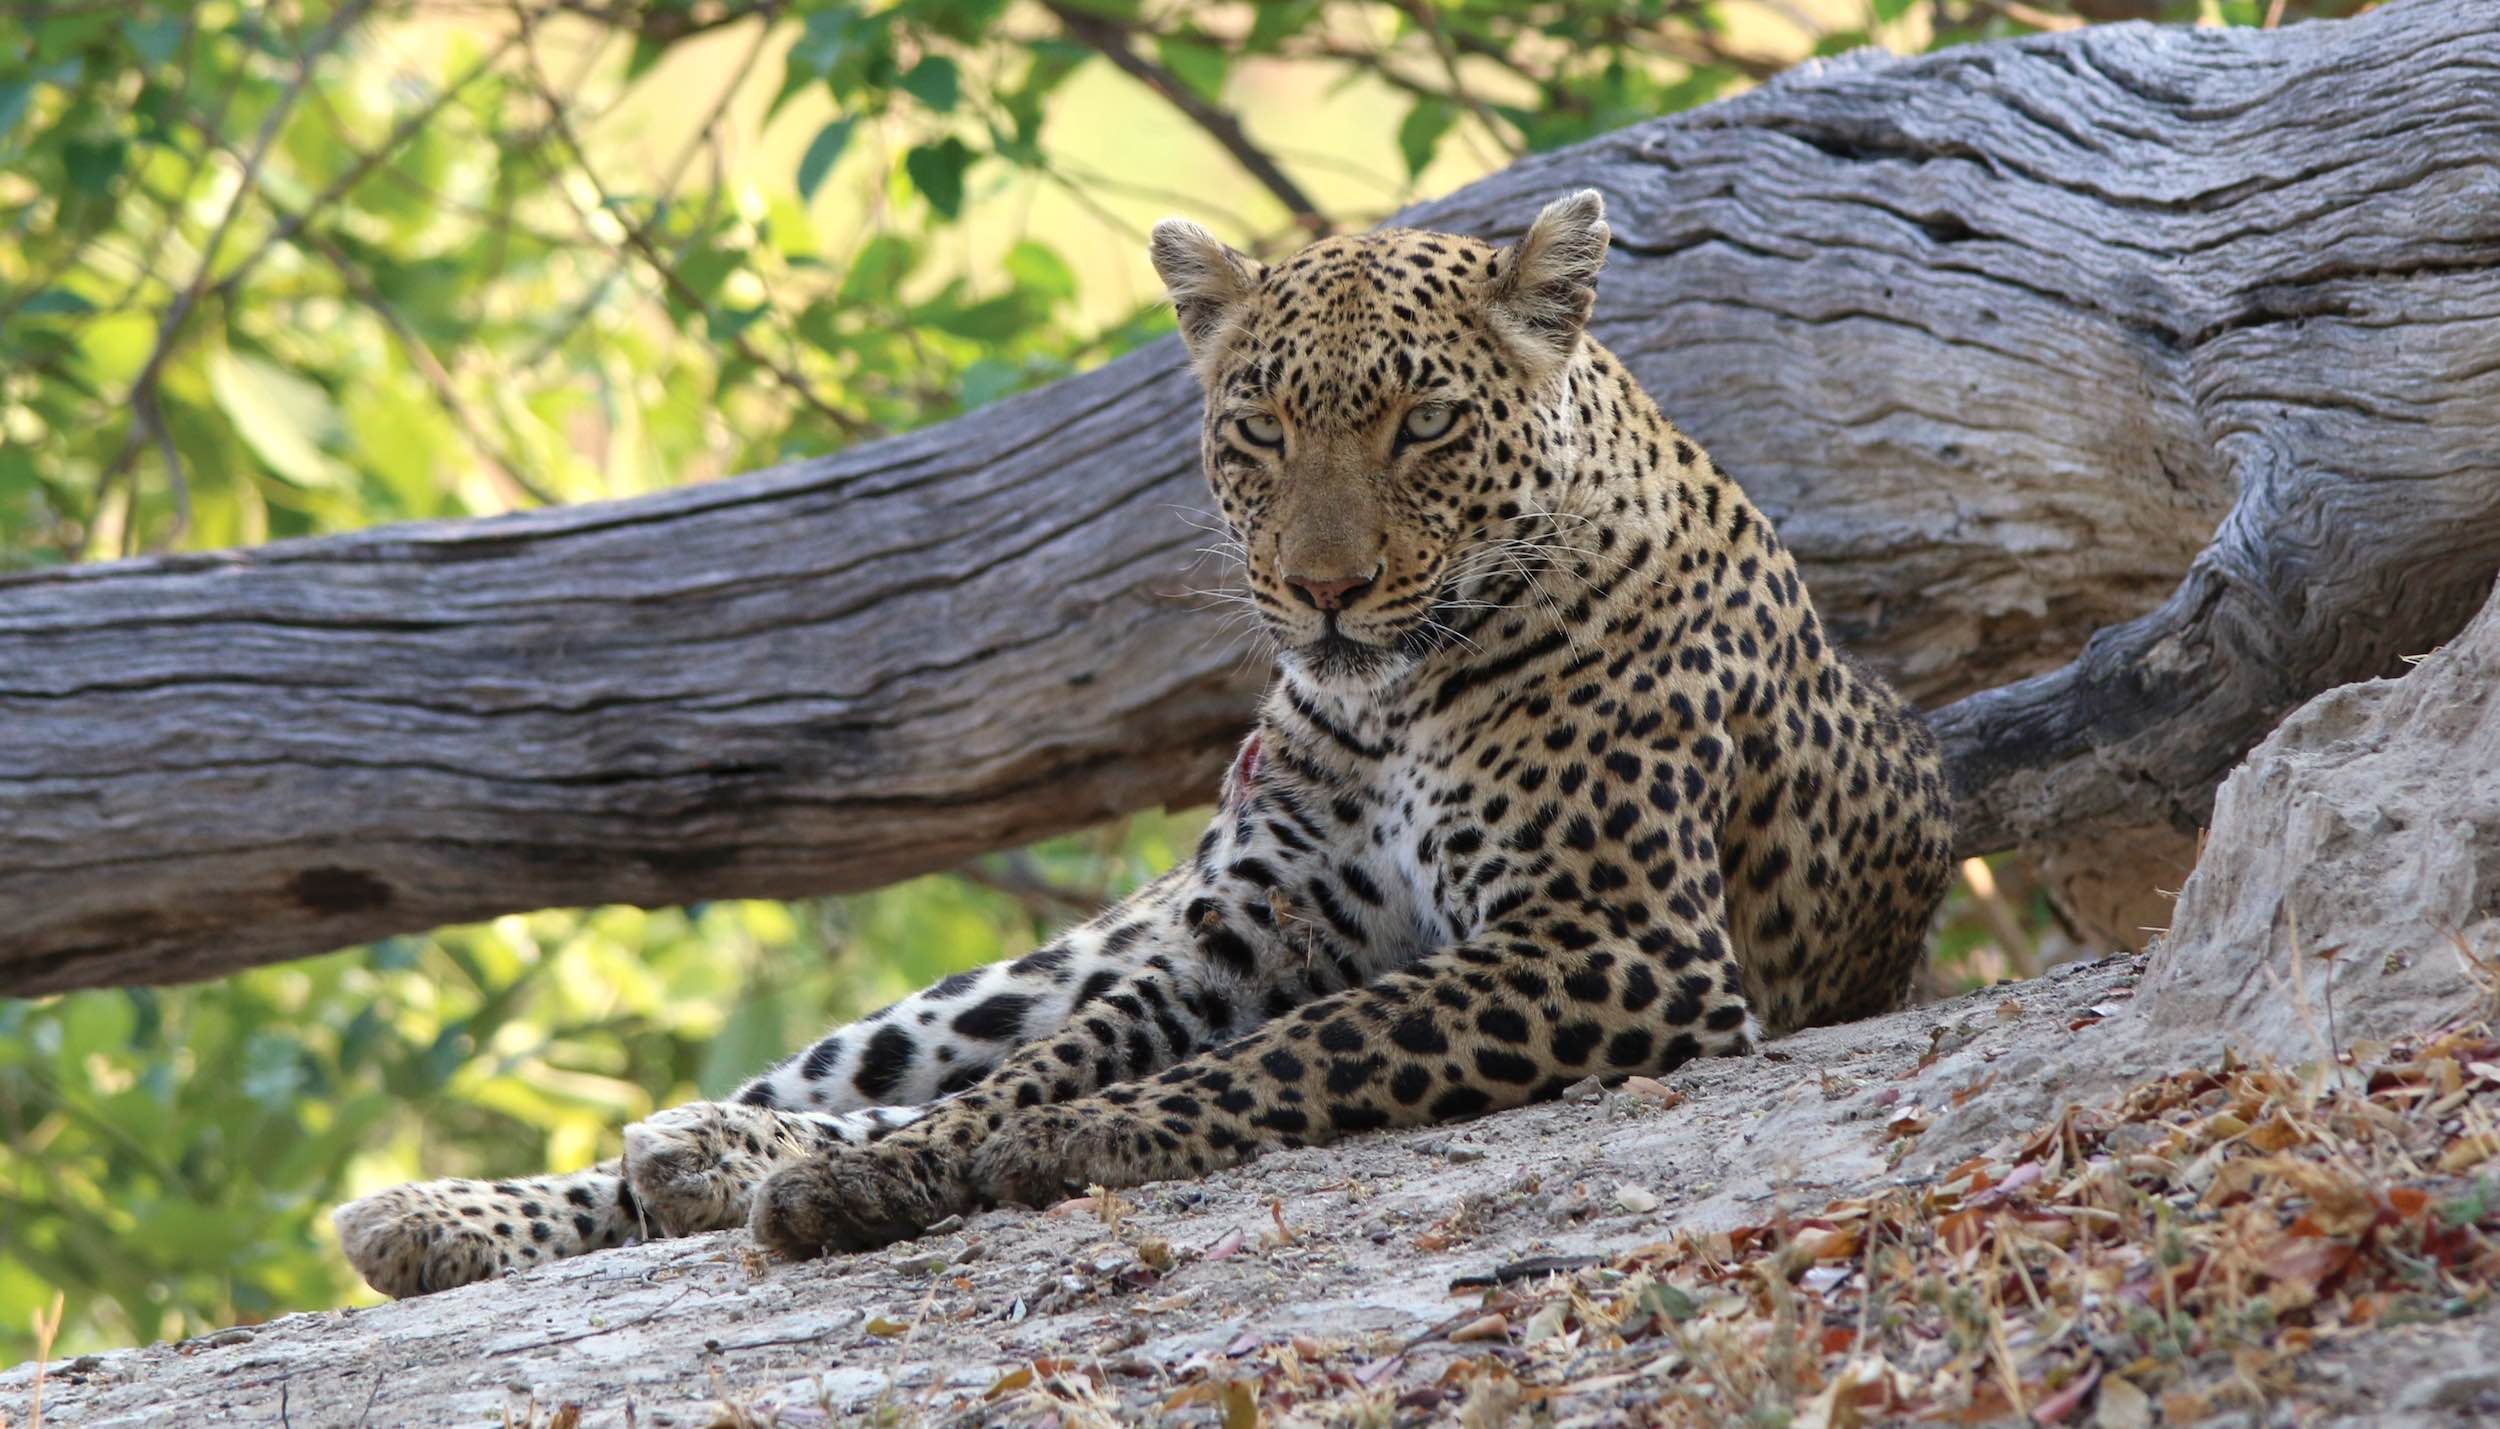 A very relaxed looking leopard.